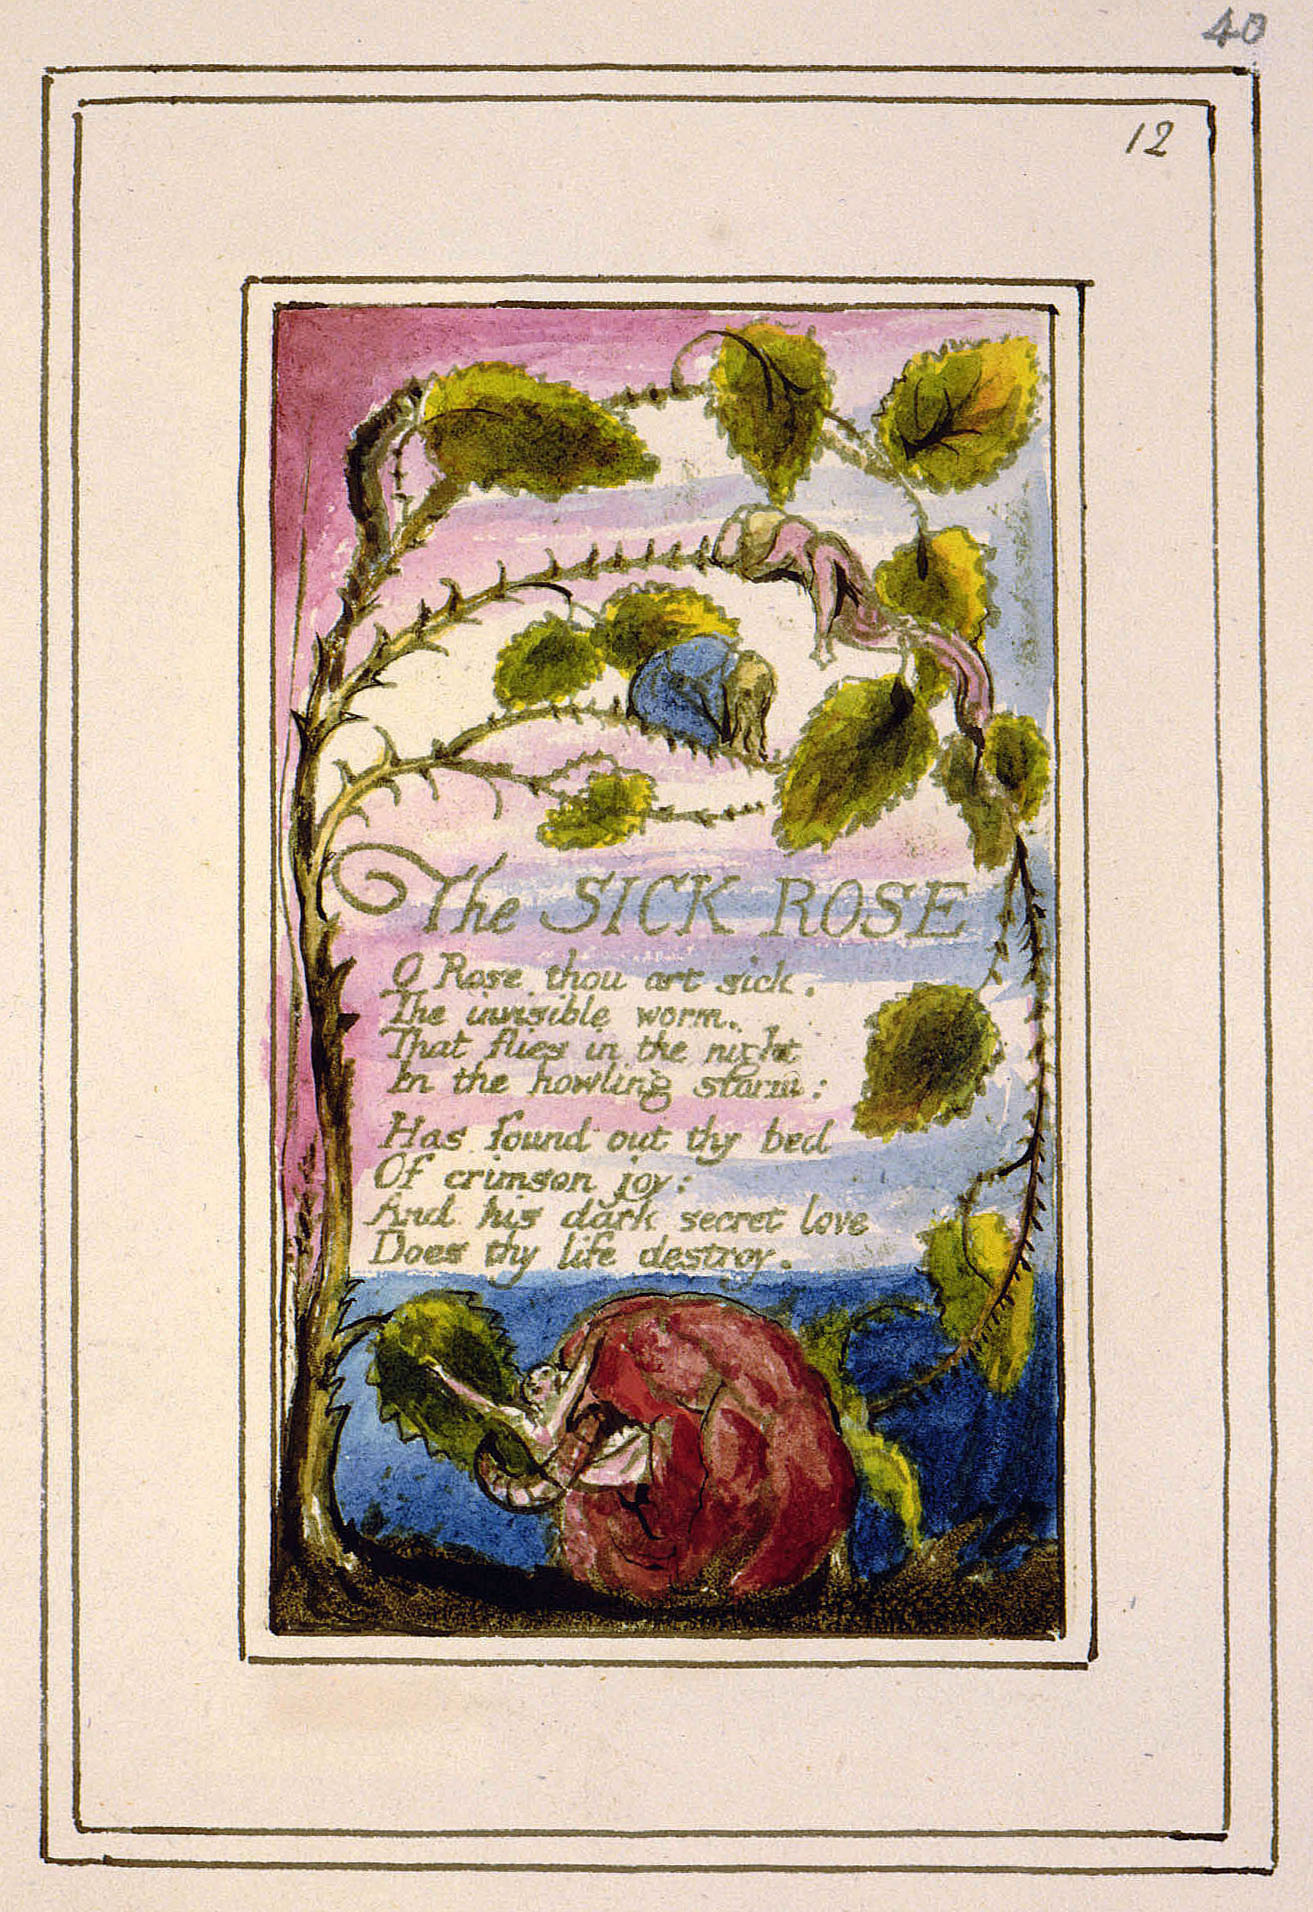 the sick rose by william blake The sick rose by william blake the sick rose learning guide by phd students from stanford, harvard, berkeley.